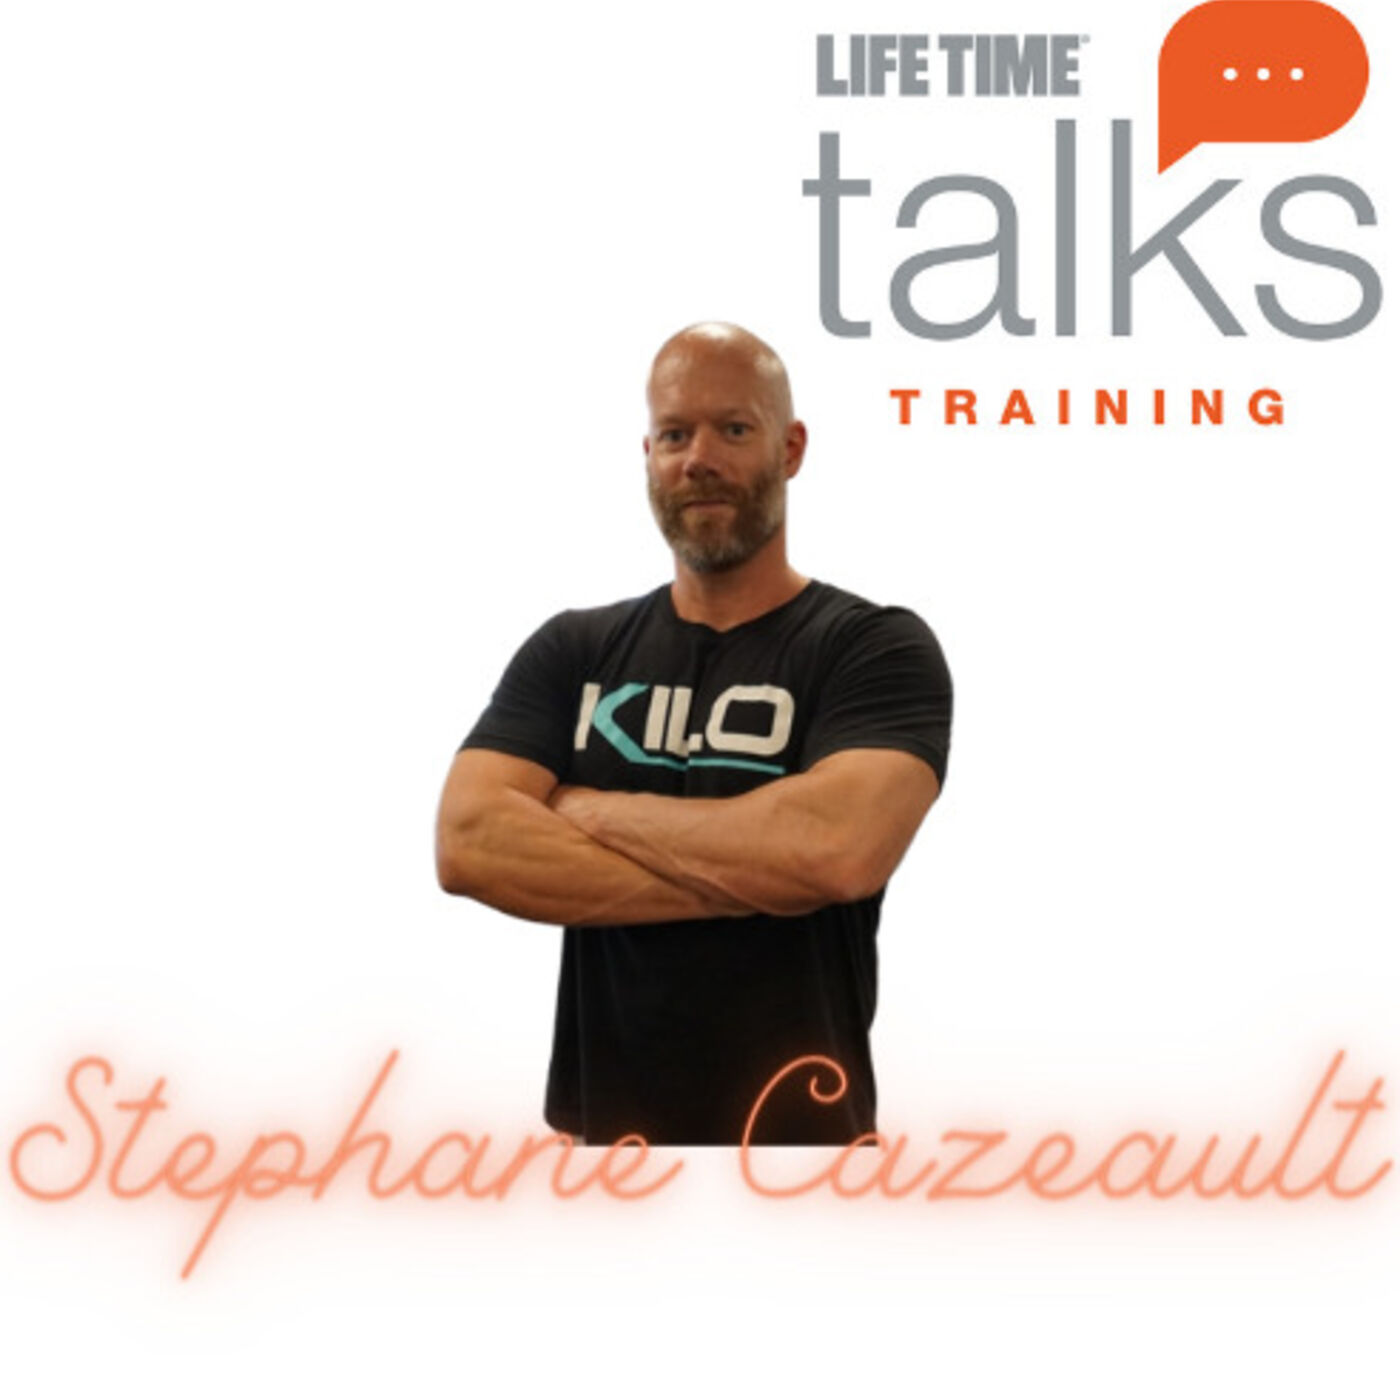 Episode #73 - Kilo Strength Society's Stephane Cazeault- Most overlooked strength training variables